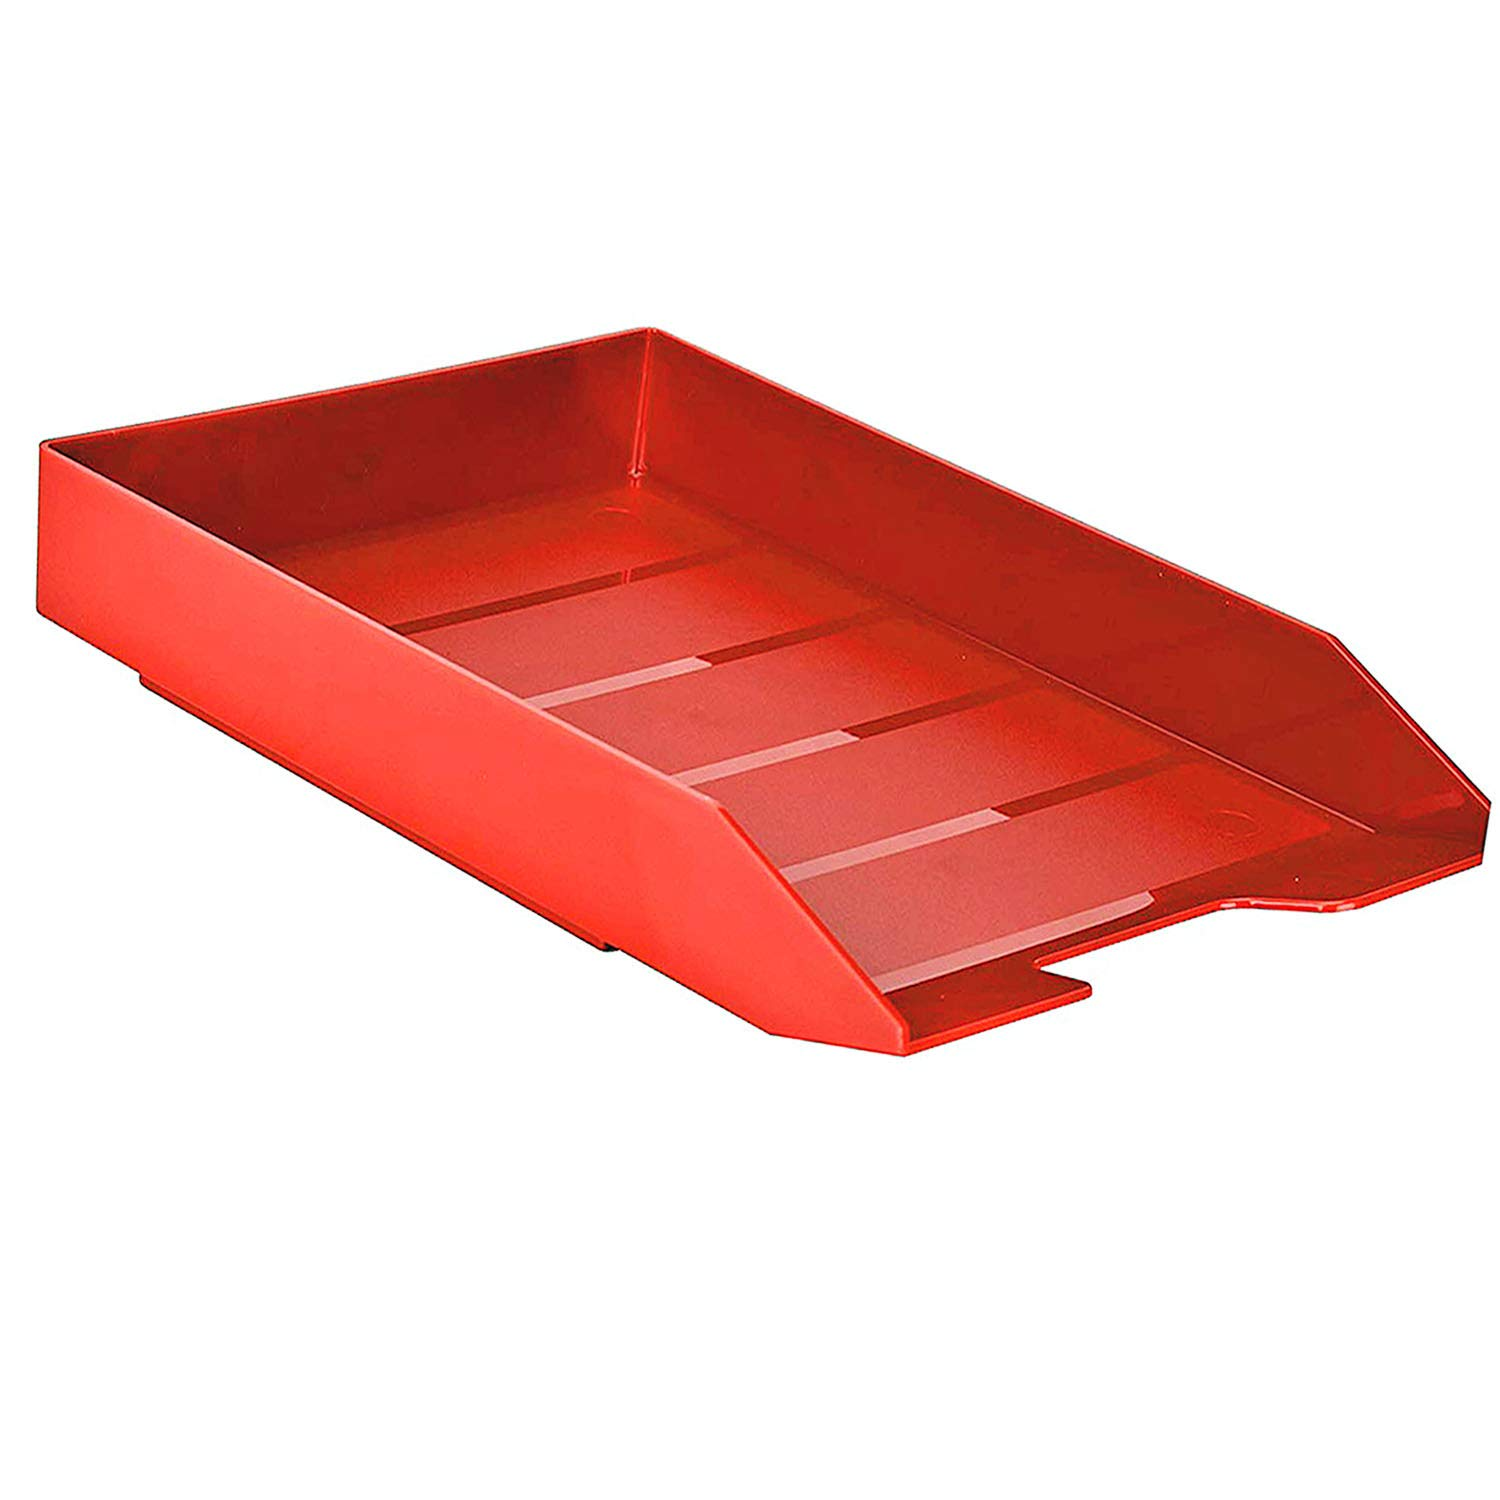 Solid Red Color Acrimet Stackable Front Load Letter Size Tray Plastic 1 Unit